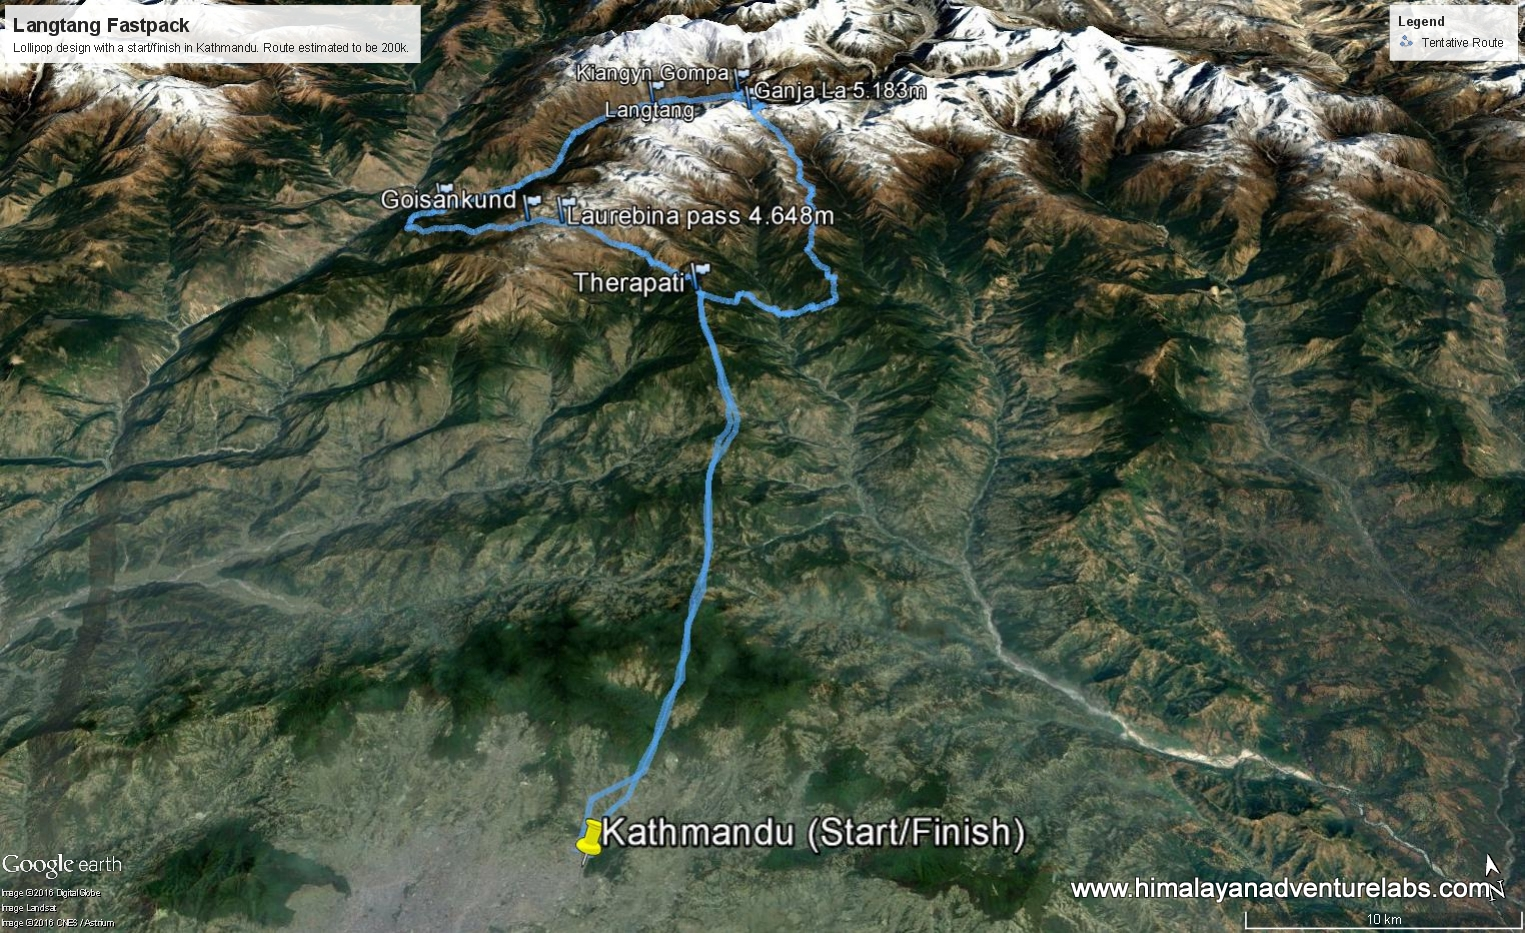 Our goal - a Himalayan lollipop. We are missing the right side of the loop because we could not cross Kanja La. Maybe next time!